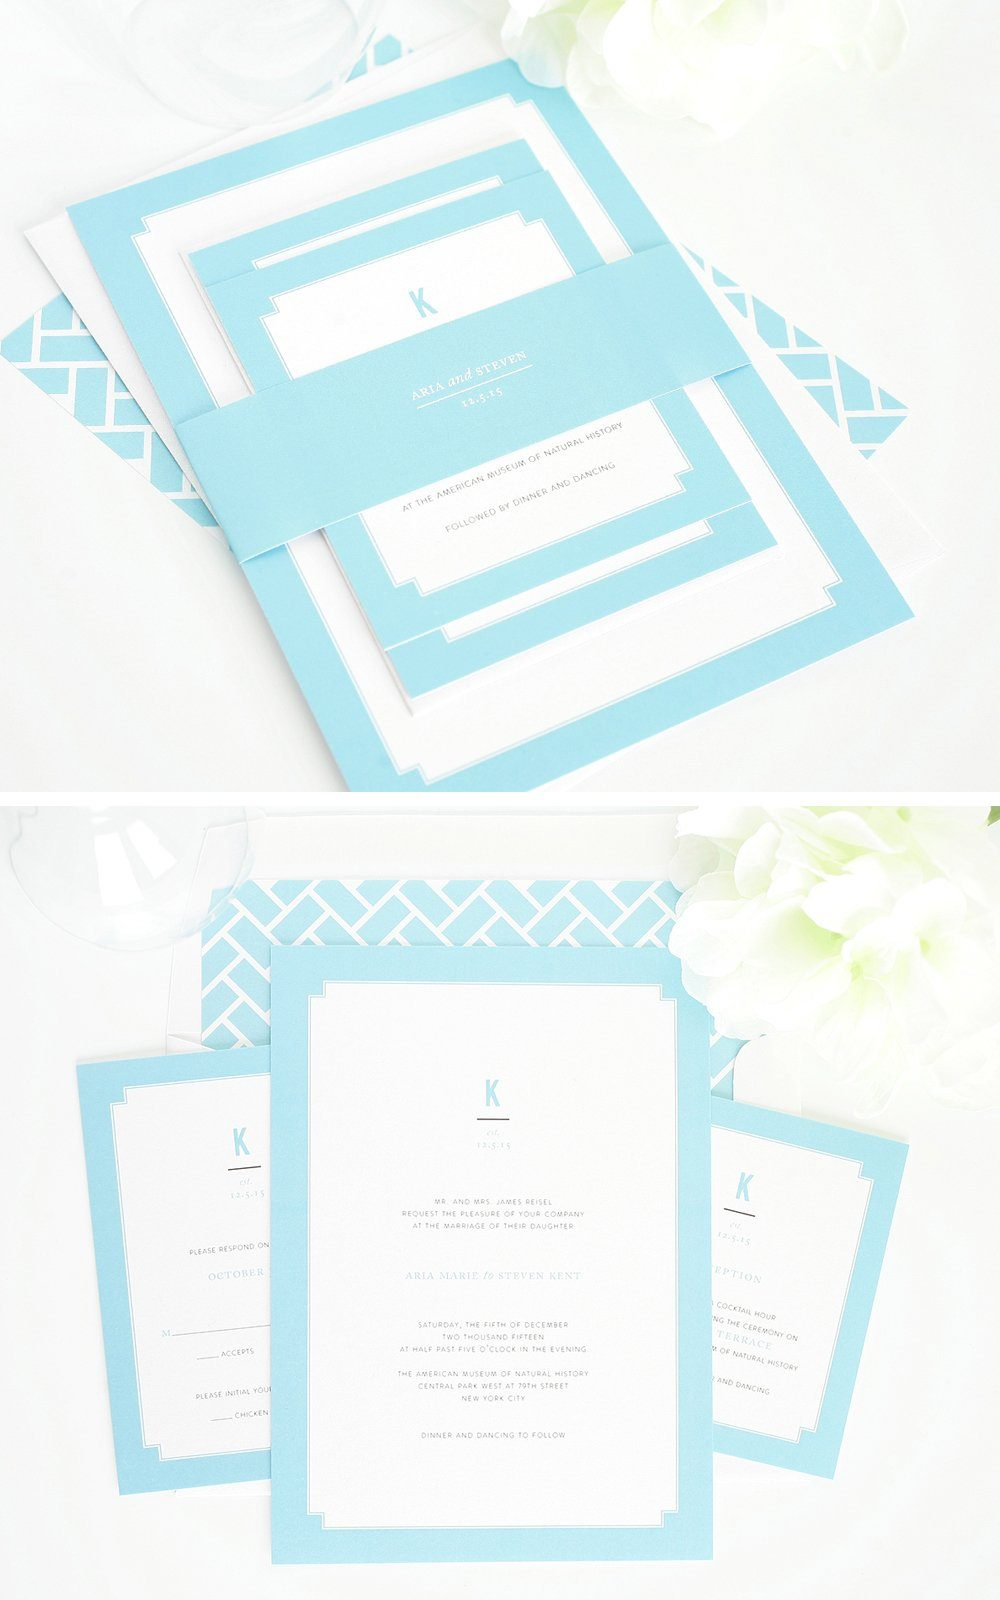 tiffany blue wedding invitations with borders tiffany blue wedding invitations Wedding Invitations in Tiffany Blue